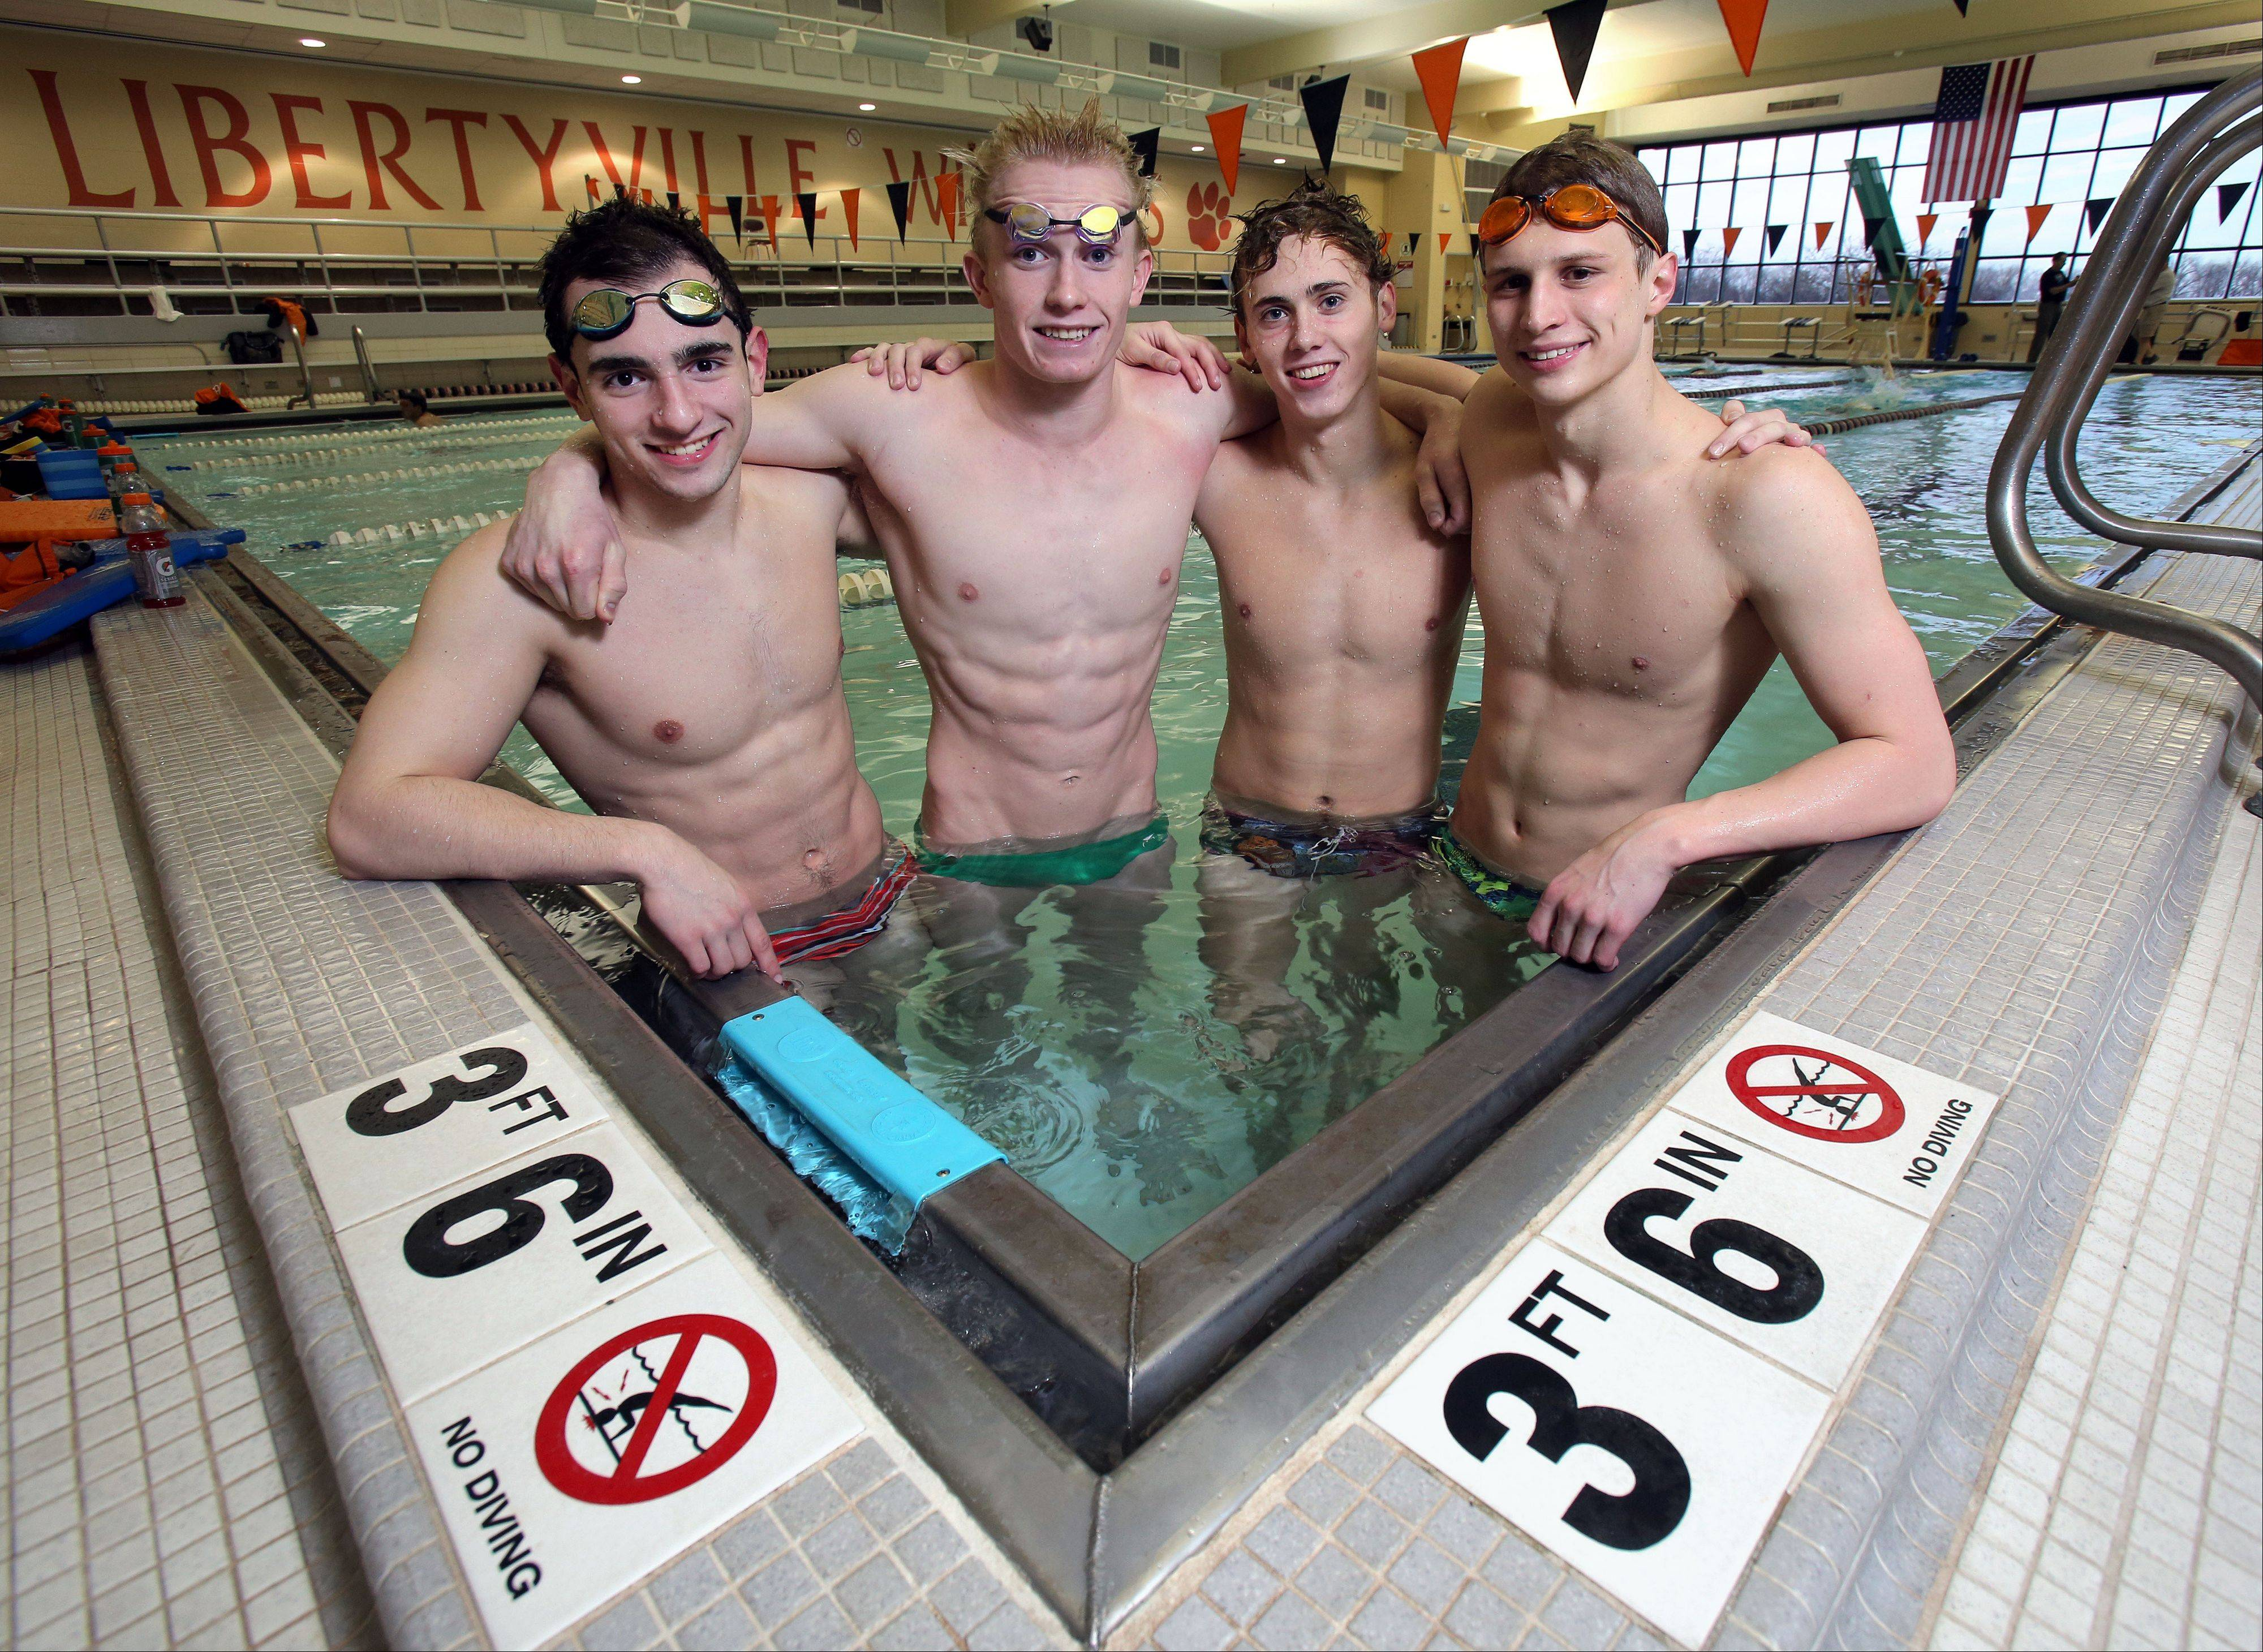 Libertyville swimmers, from left, Matt Harrington, Bobby Snader, Atticus Rush, and Alex Snarski, set pool records at Libertyville in the 200 medley, 200 freestyle and 400 freestyle relays last week. They�re after bigger goals in the coming weeks, including a top-three finish in the state meet.